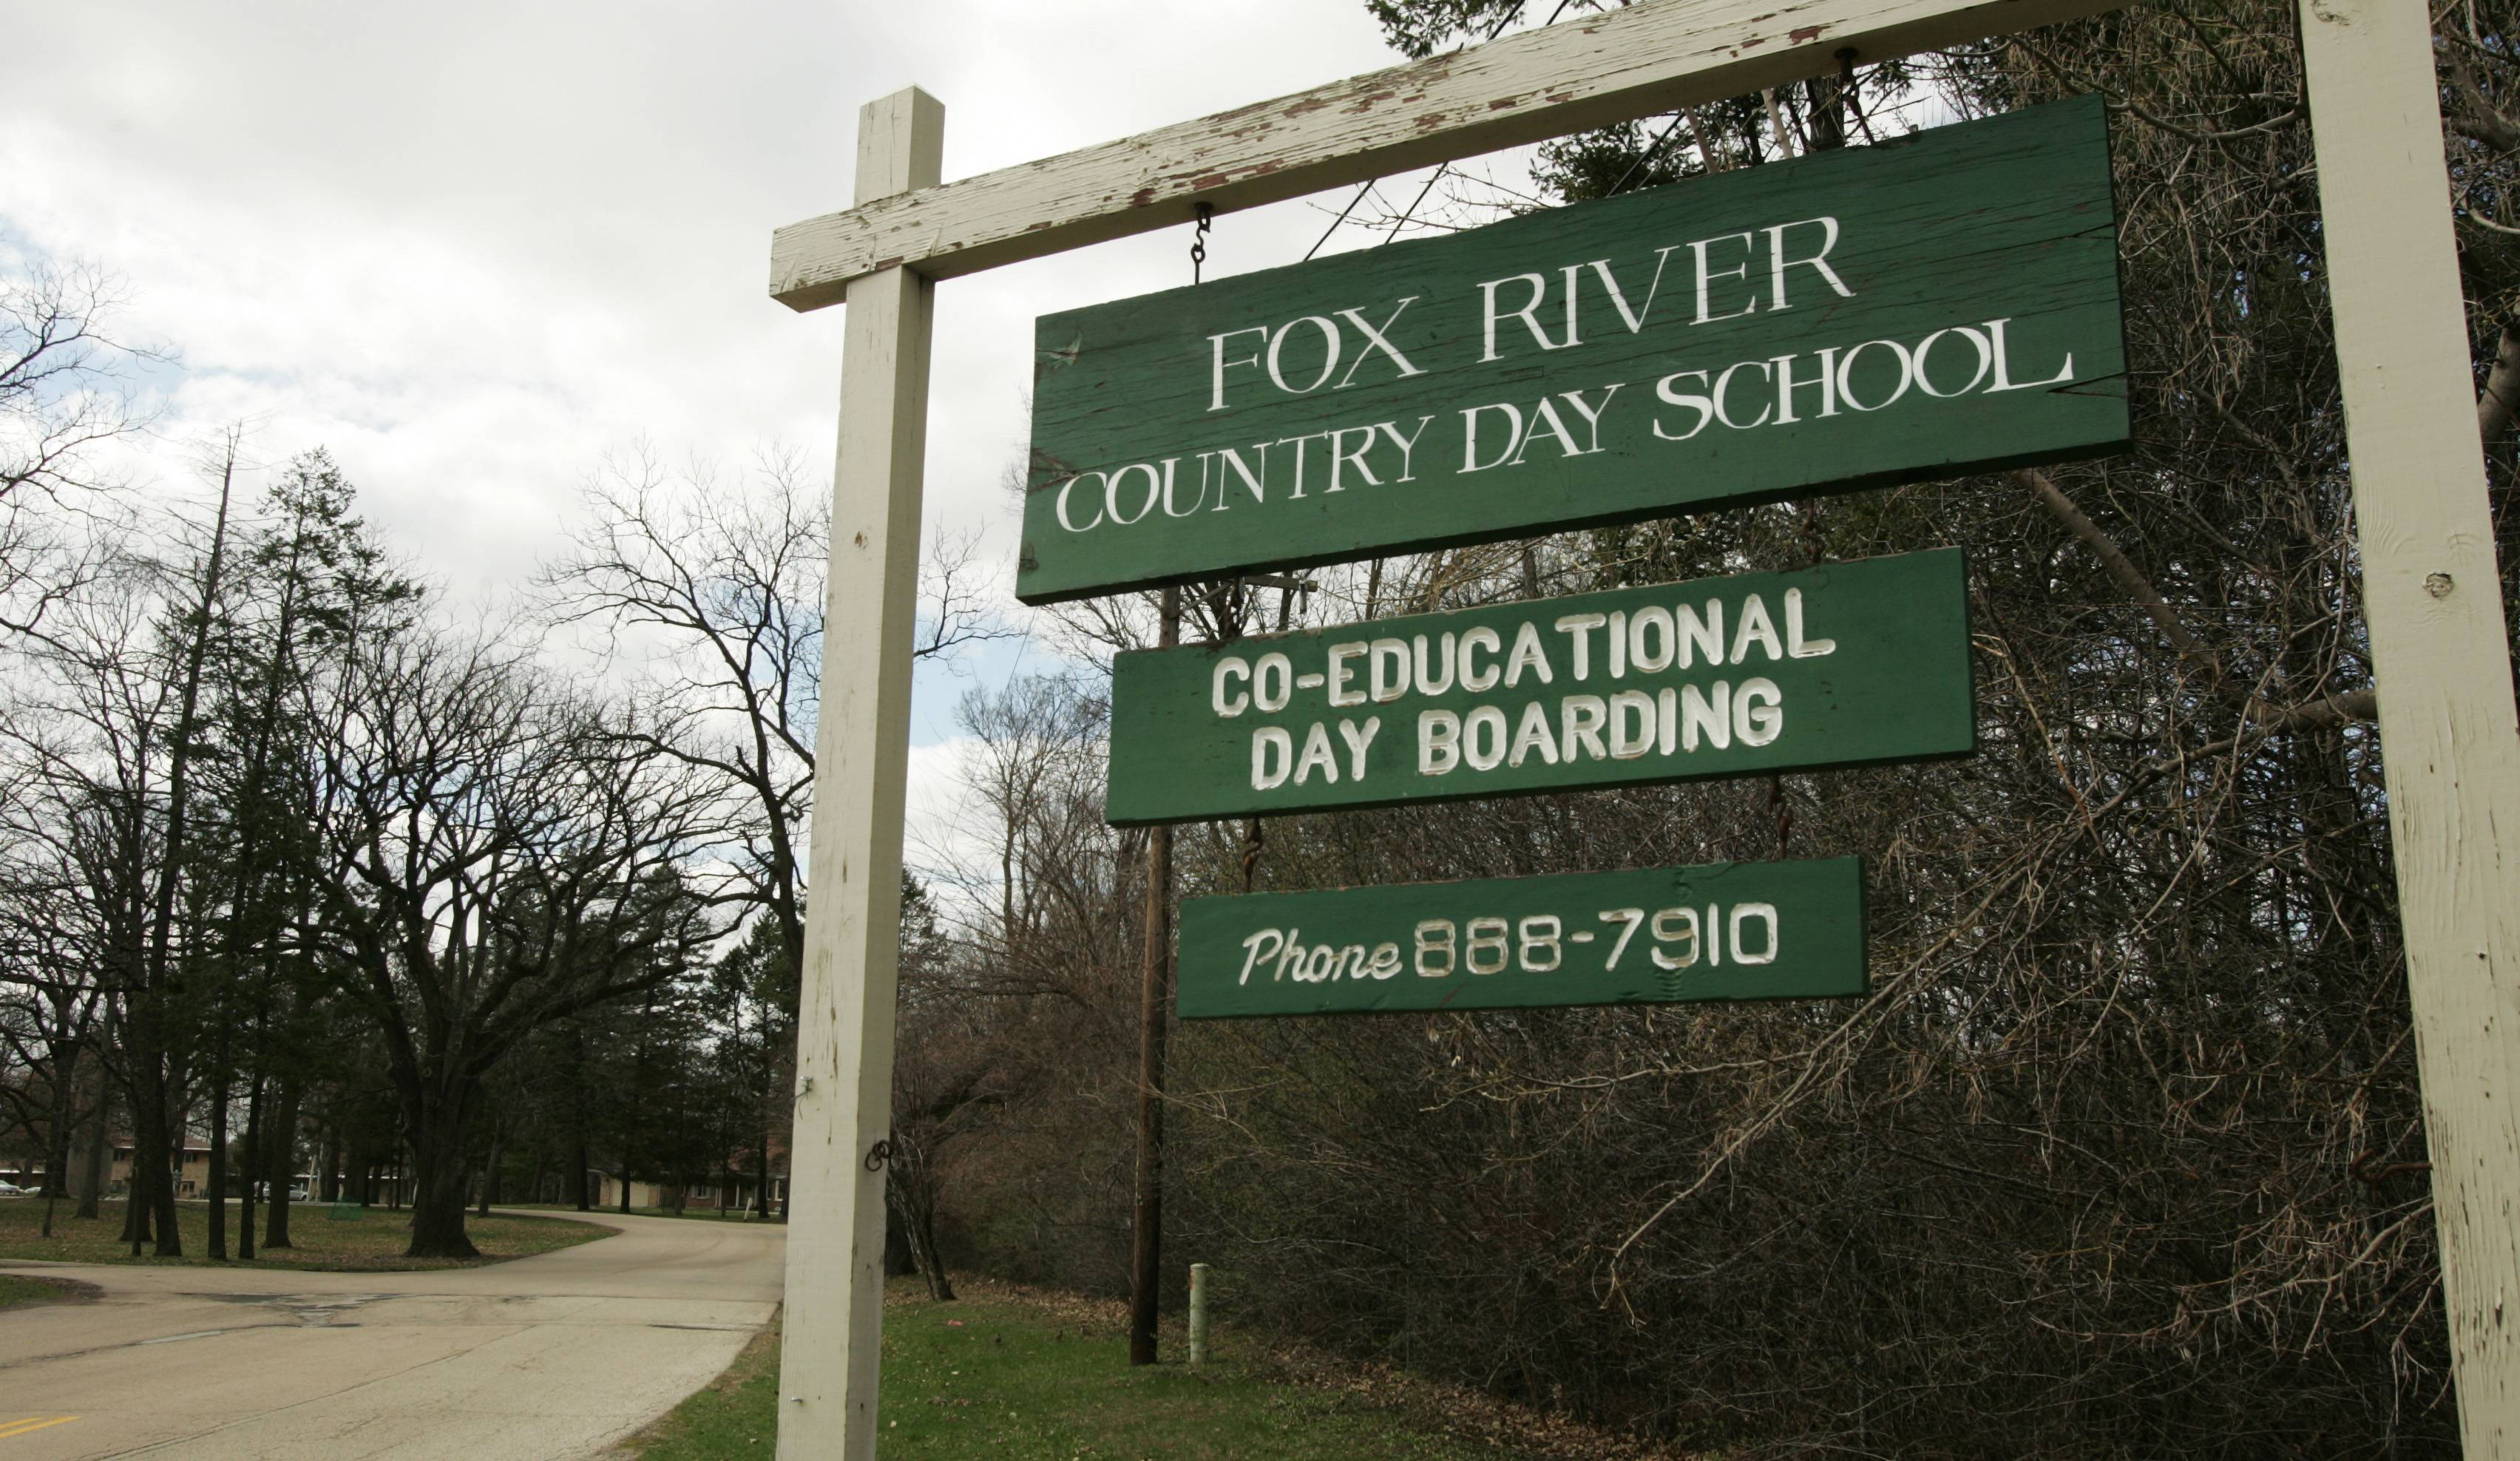 U-46 officials Monday night hashed out terms of a contract for a charter school proposed for the former Fox River Country Day School property in Elgin.